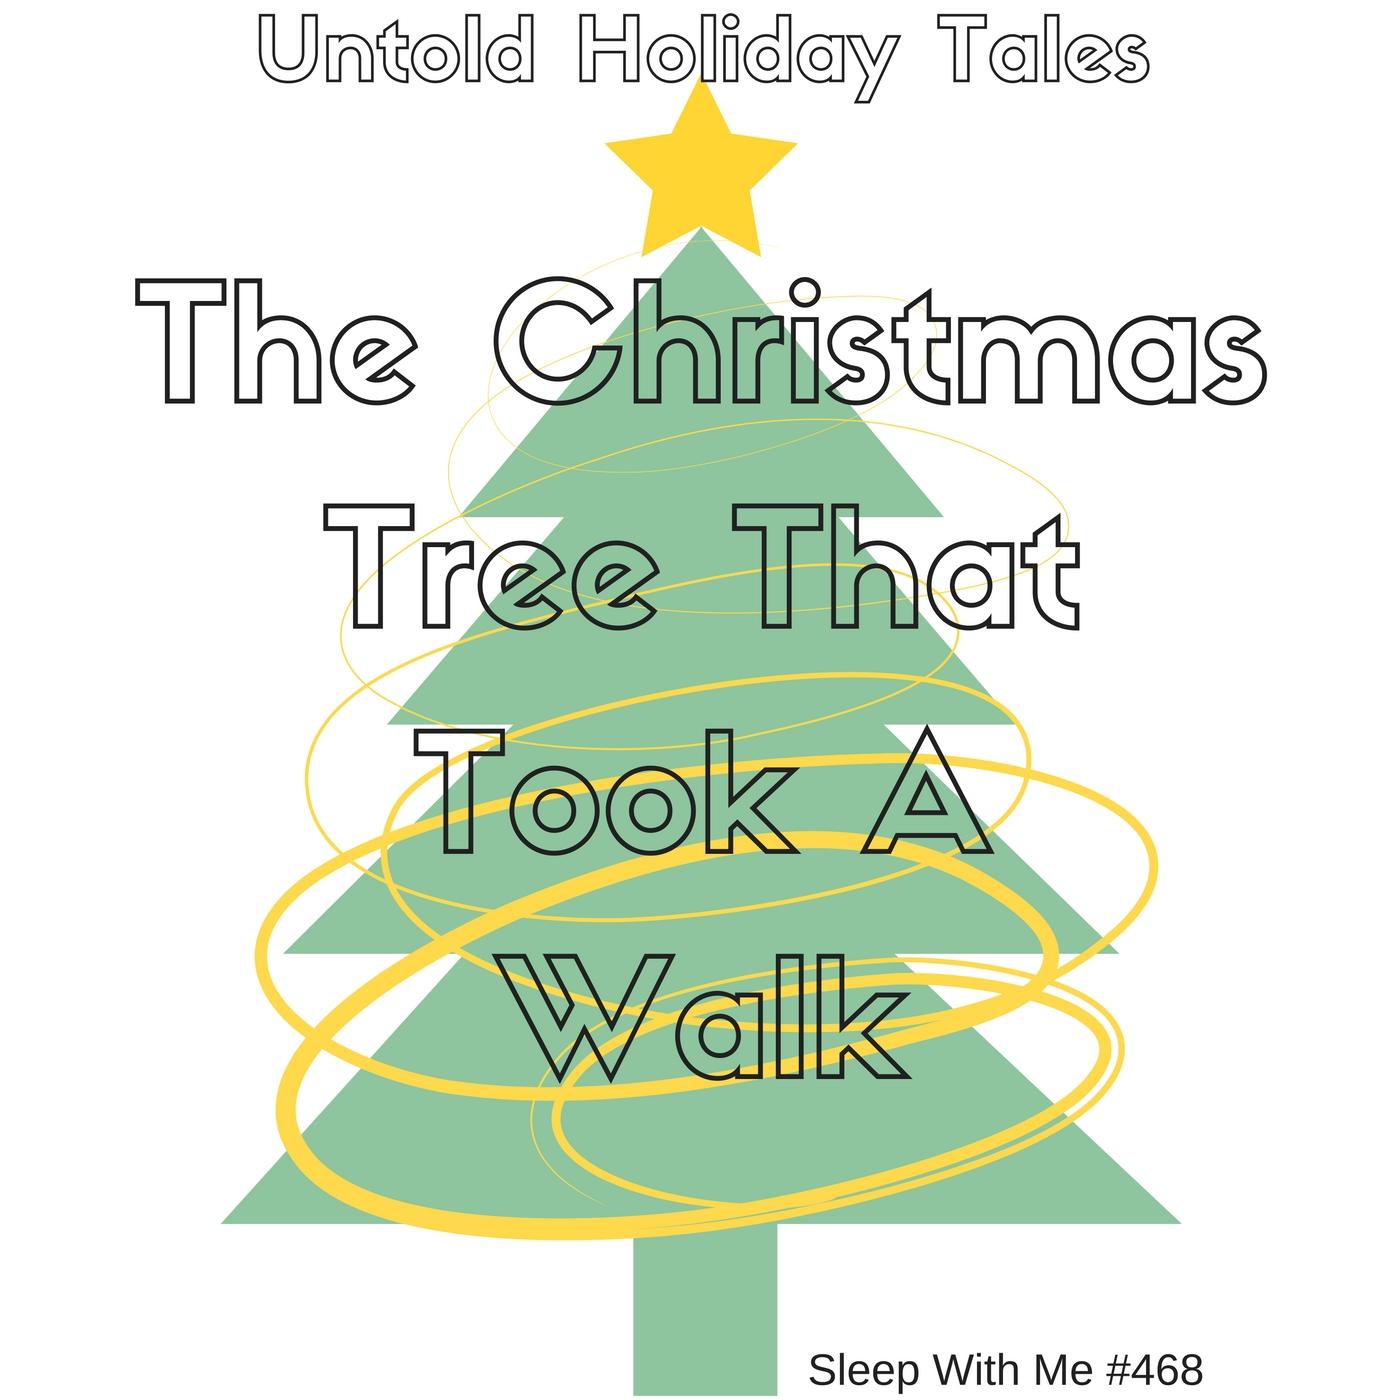 The Christmas Tree That Took a Walk | Untold Holiday Tales | Sleep With Me #468